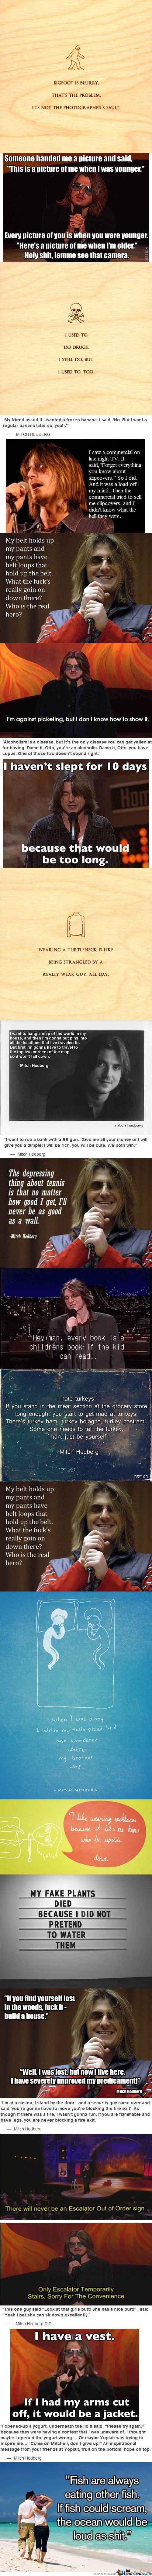 Mitch Hedberg was one of my favorite comedians.